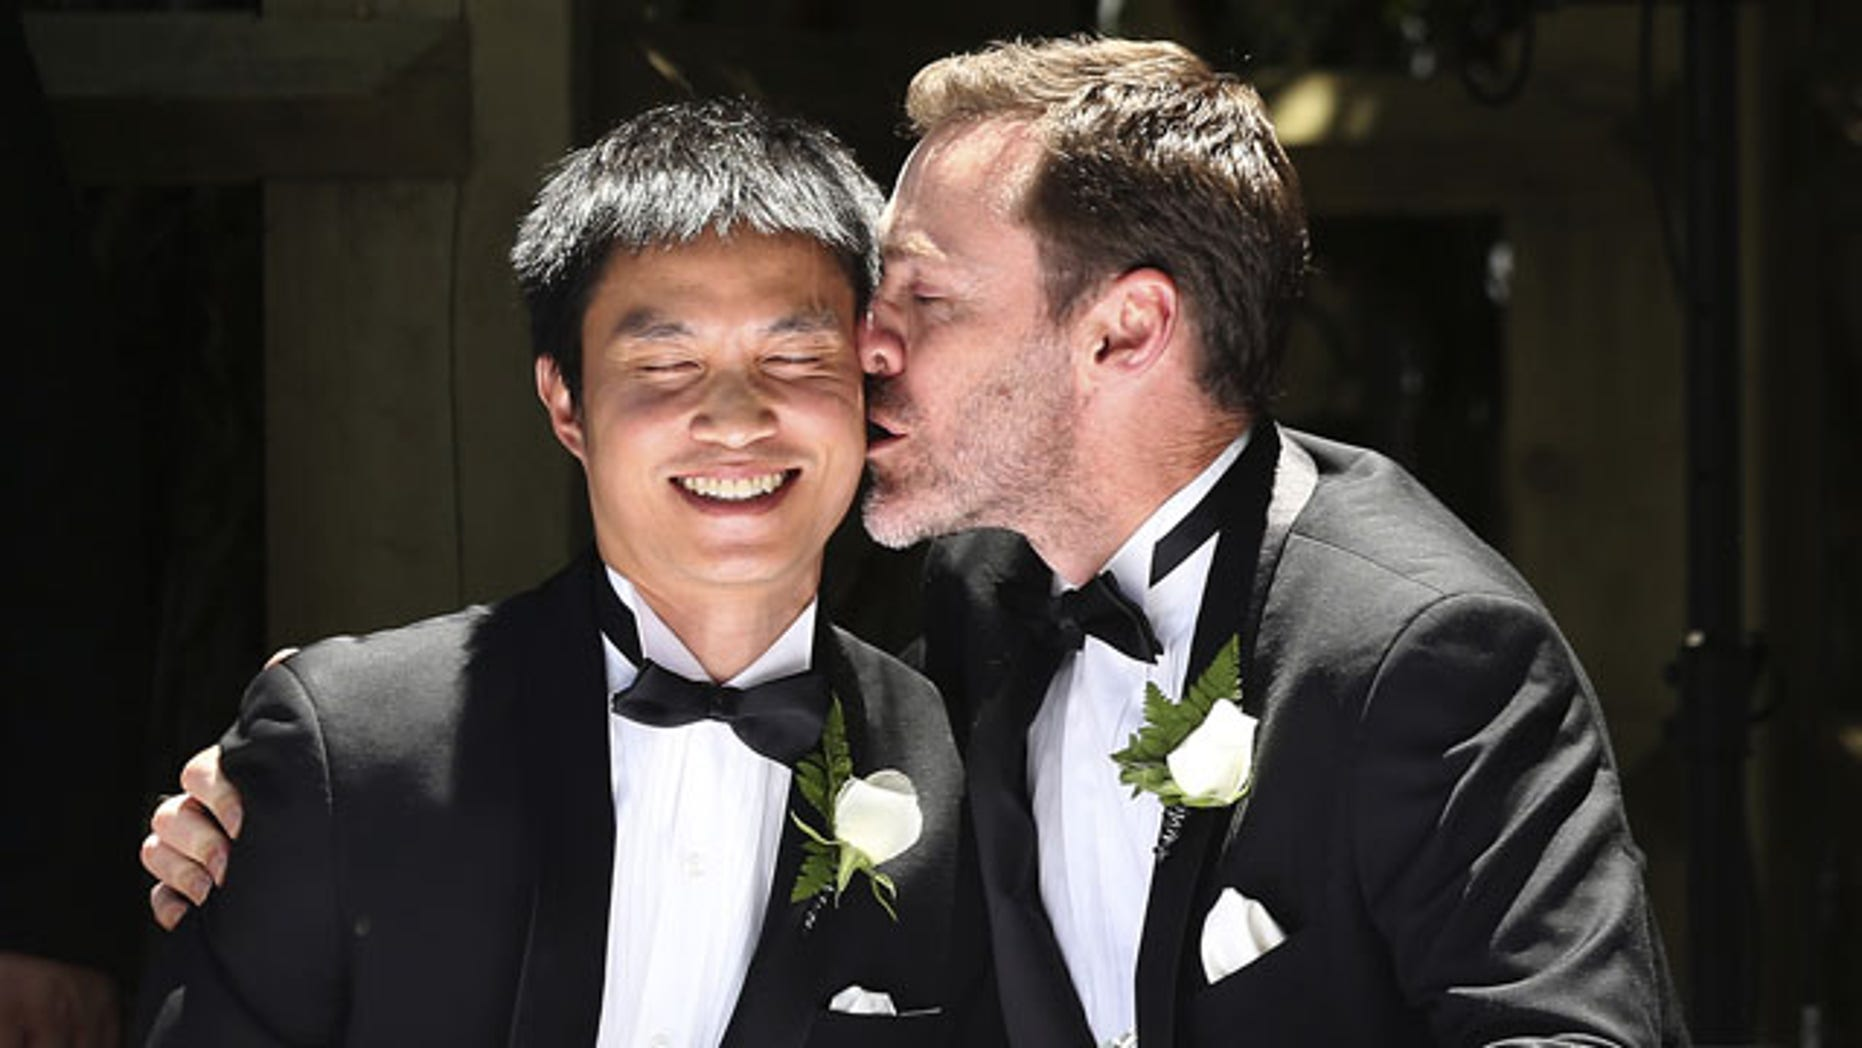 FILE - In this Dec. 7, 2013 file photo, Ivan Hinton, right, gives his partner Chris Teoh a kiss after taking their wedding vows during a ceremony at Old Parliament House in Canberra, Australia. Australia's highest court struck down a landmark law on Thursday, Dec. 12, 2013 that had begun allowing the country's first gay marriages. (AP Photo)